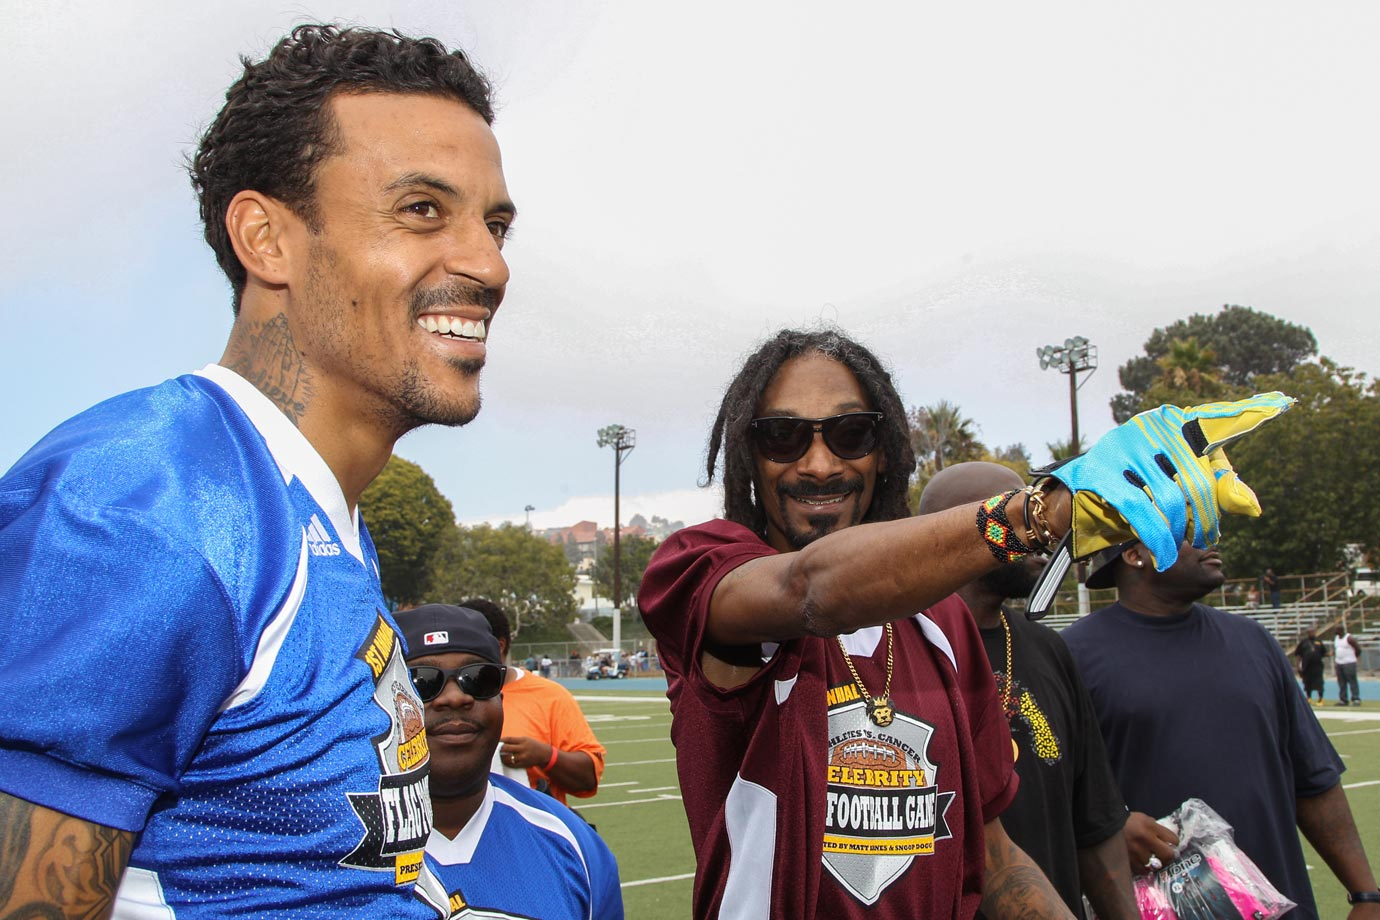 Matt Barnes and Snoop Dogg attend the 1st Annual Athletes vs. Cancer Celebrity Flag Football game on Aug. 18, 2013 at the Palisades High School in Pacific Palisades, Calif.